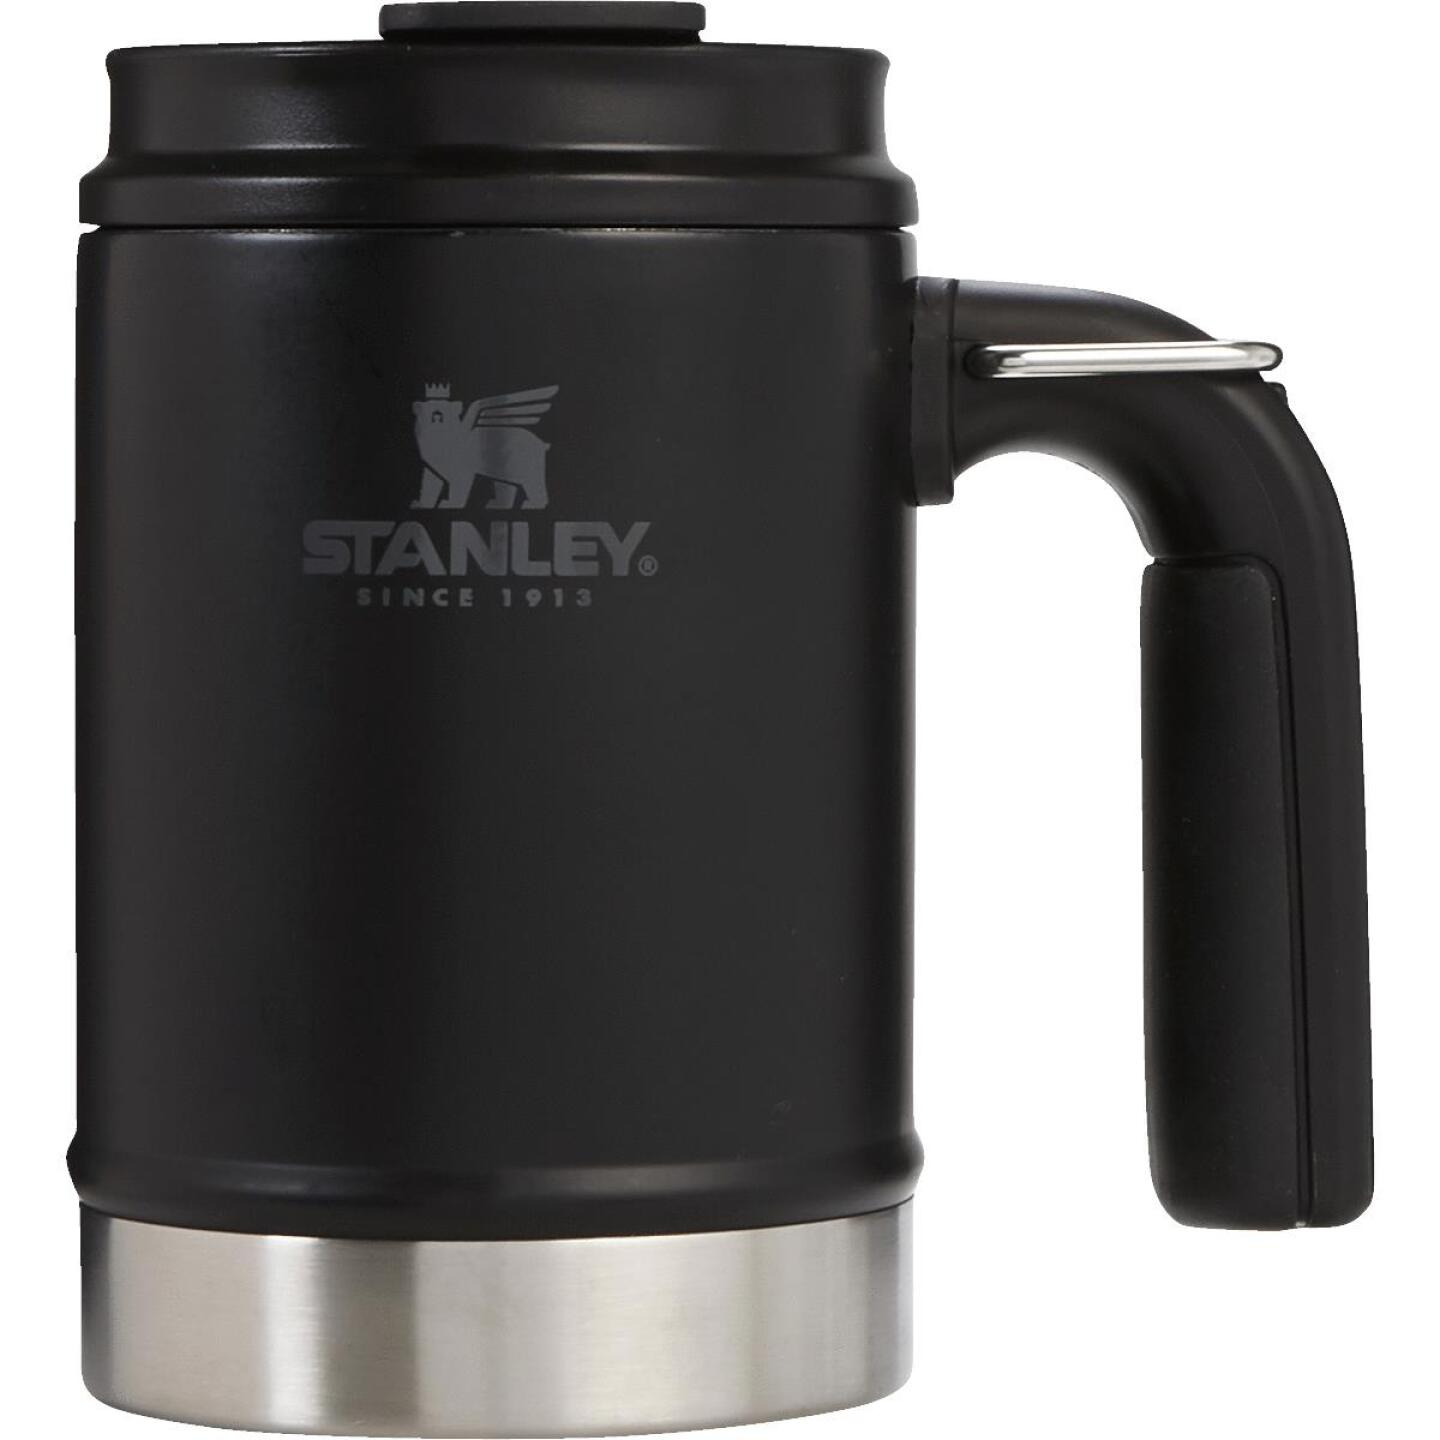 Stanley 16 Oz. Black Big Grip Insulated Mug Image 1